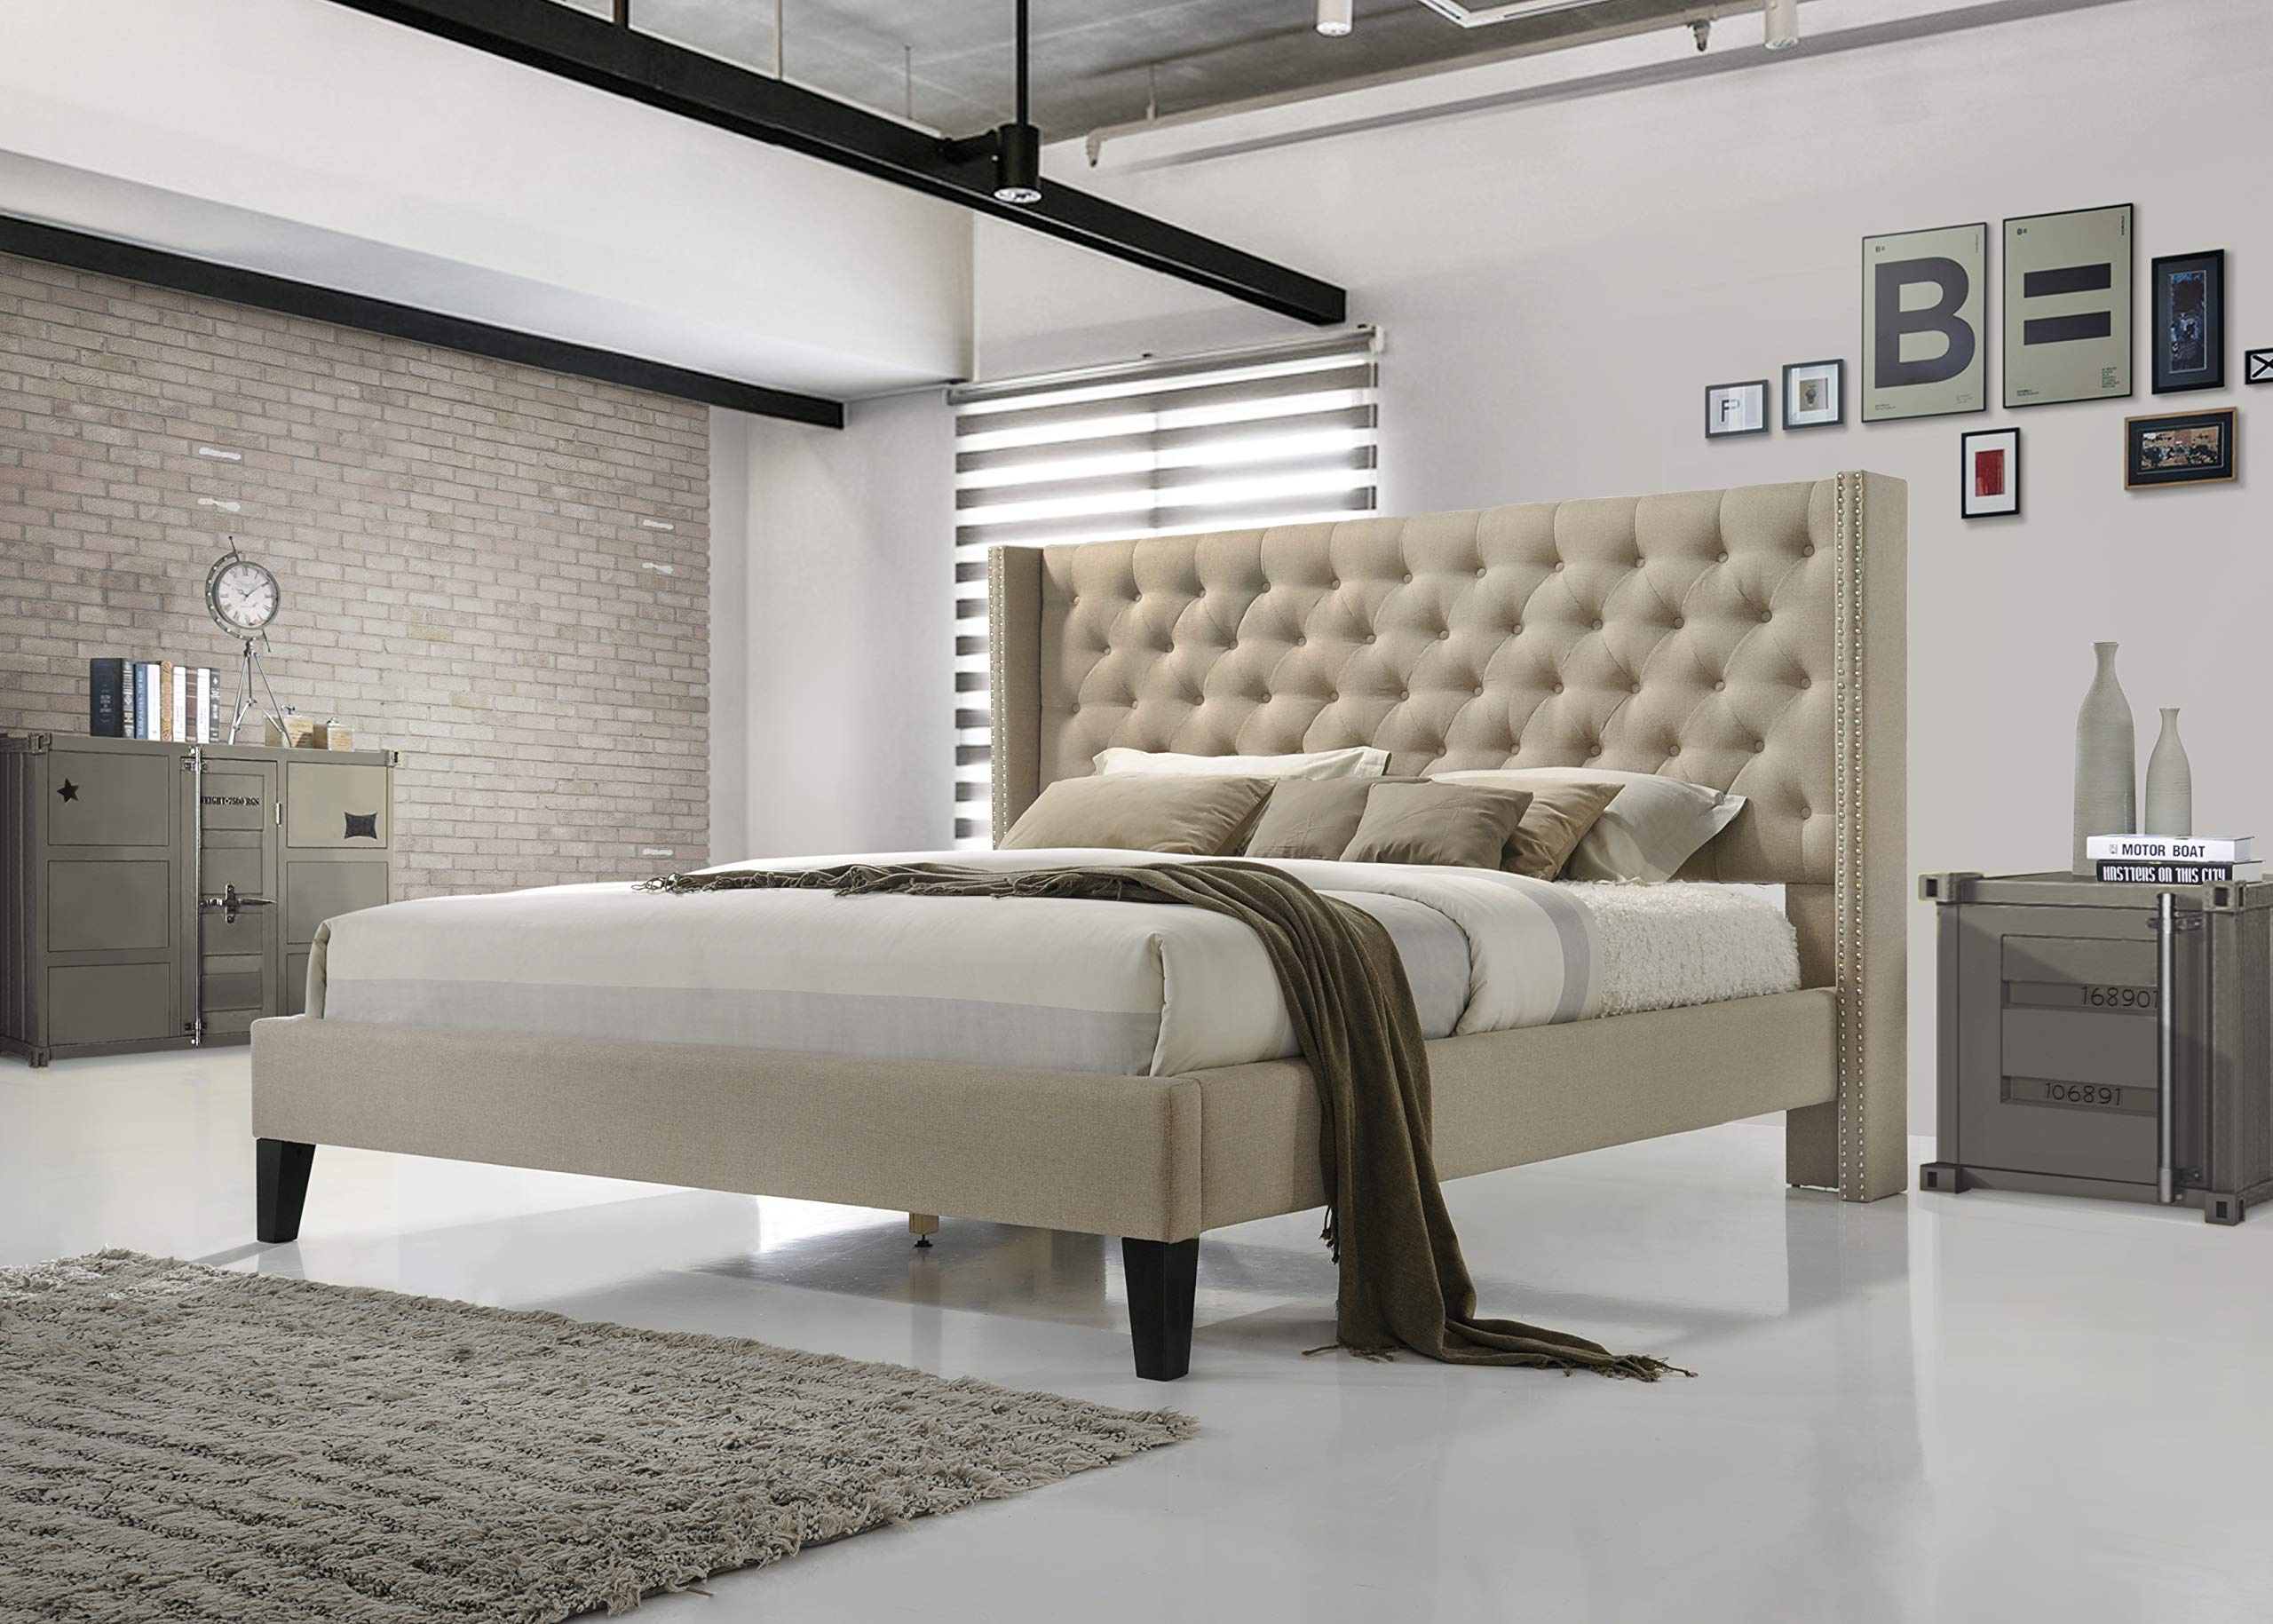 ALTOZZO ALT-Q6512-BGE Pacifica Tufted Upholstered Platform Contemporary Bed, Queen, Beige by ALTOZZO